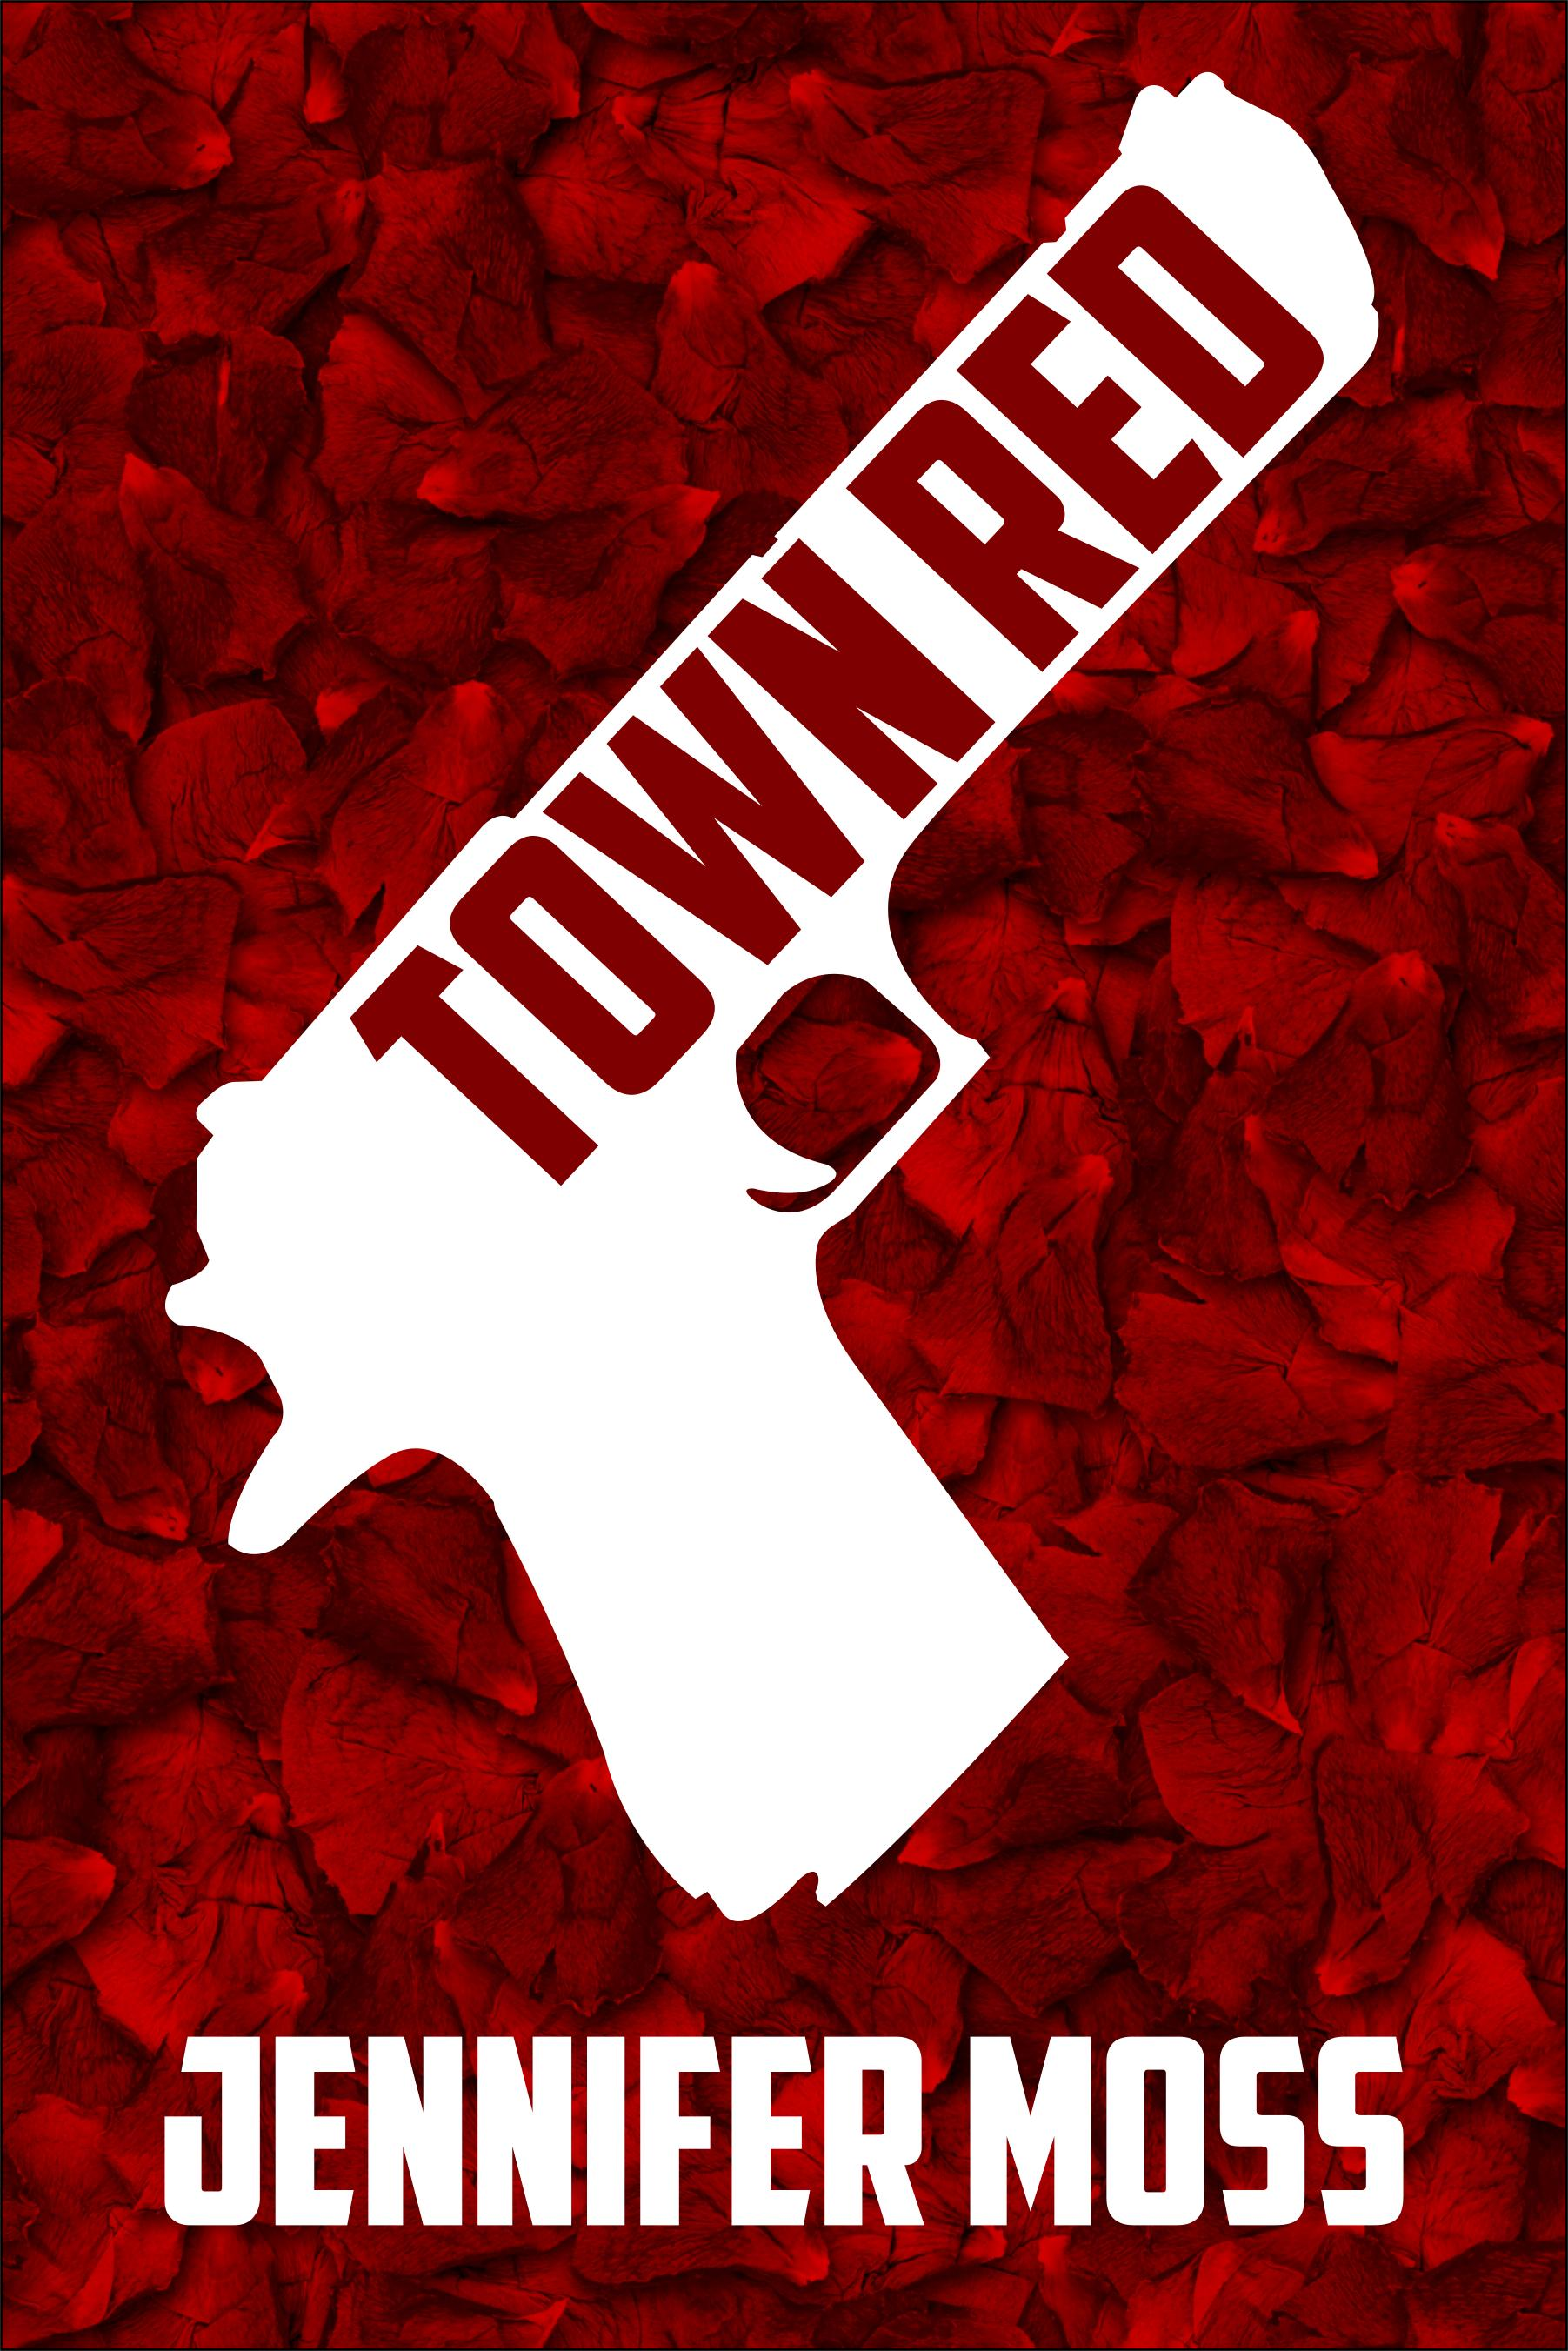 town-red-cover-300-dpi